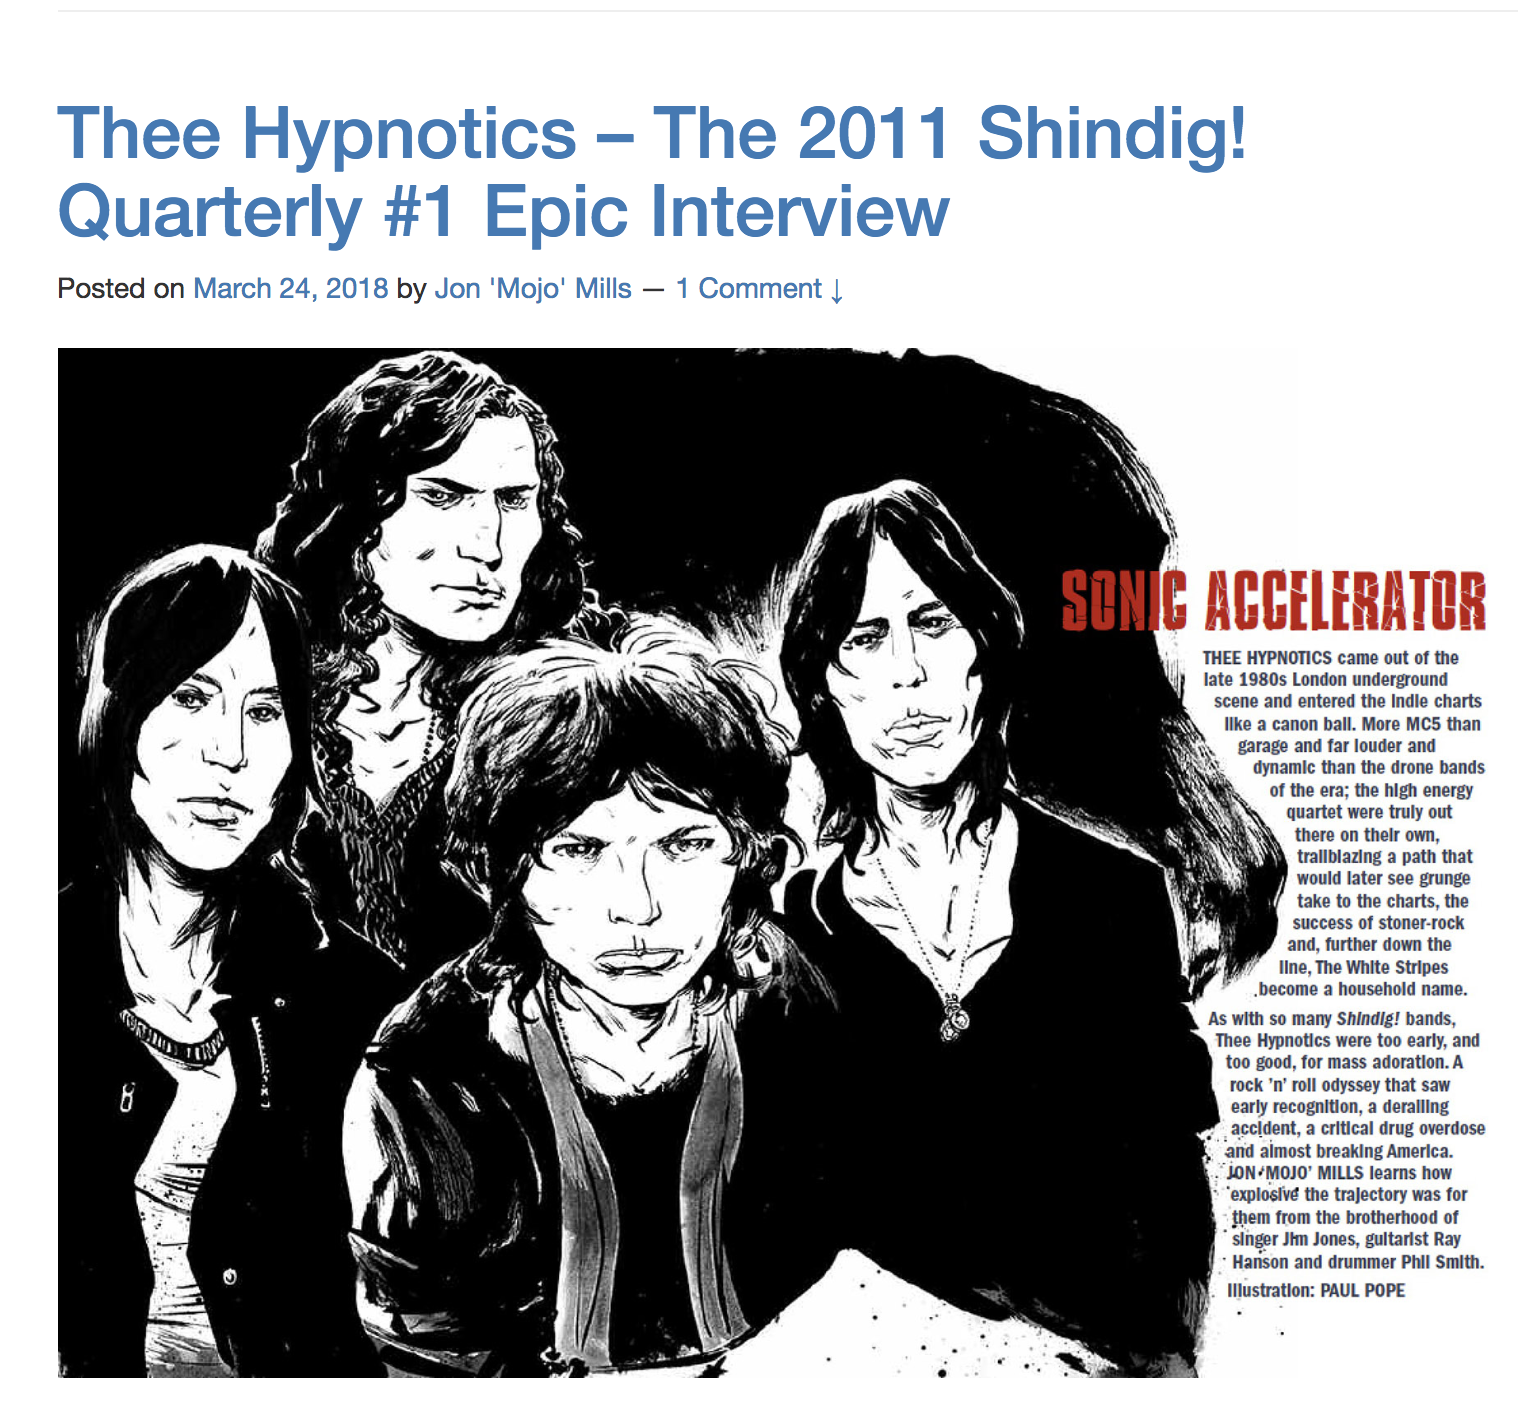 The 2011 Shindig! Quarterly #1 Epic Interview